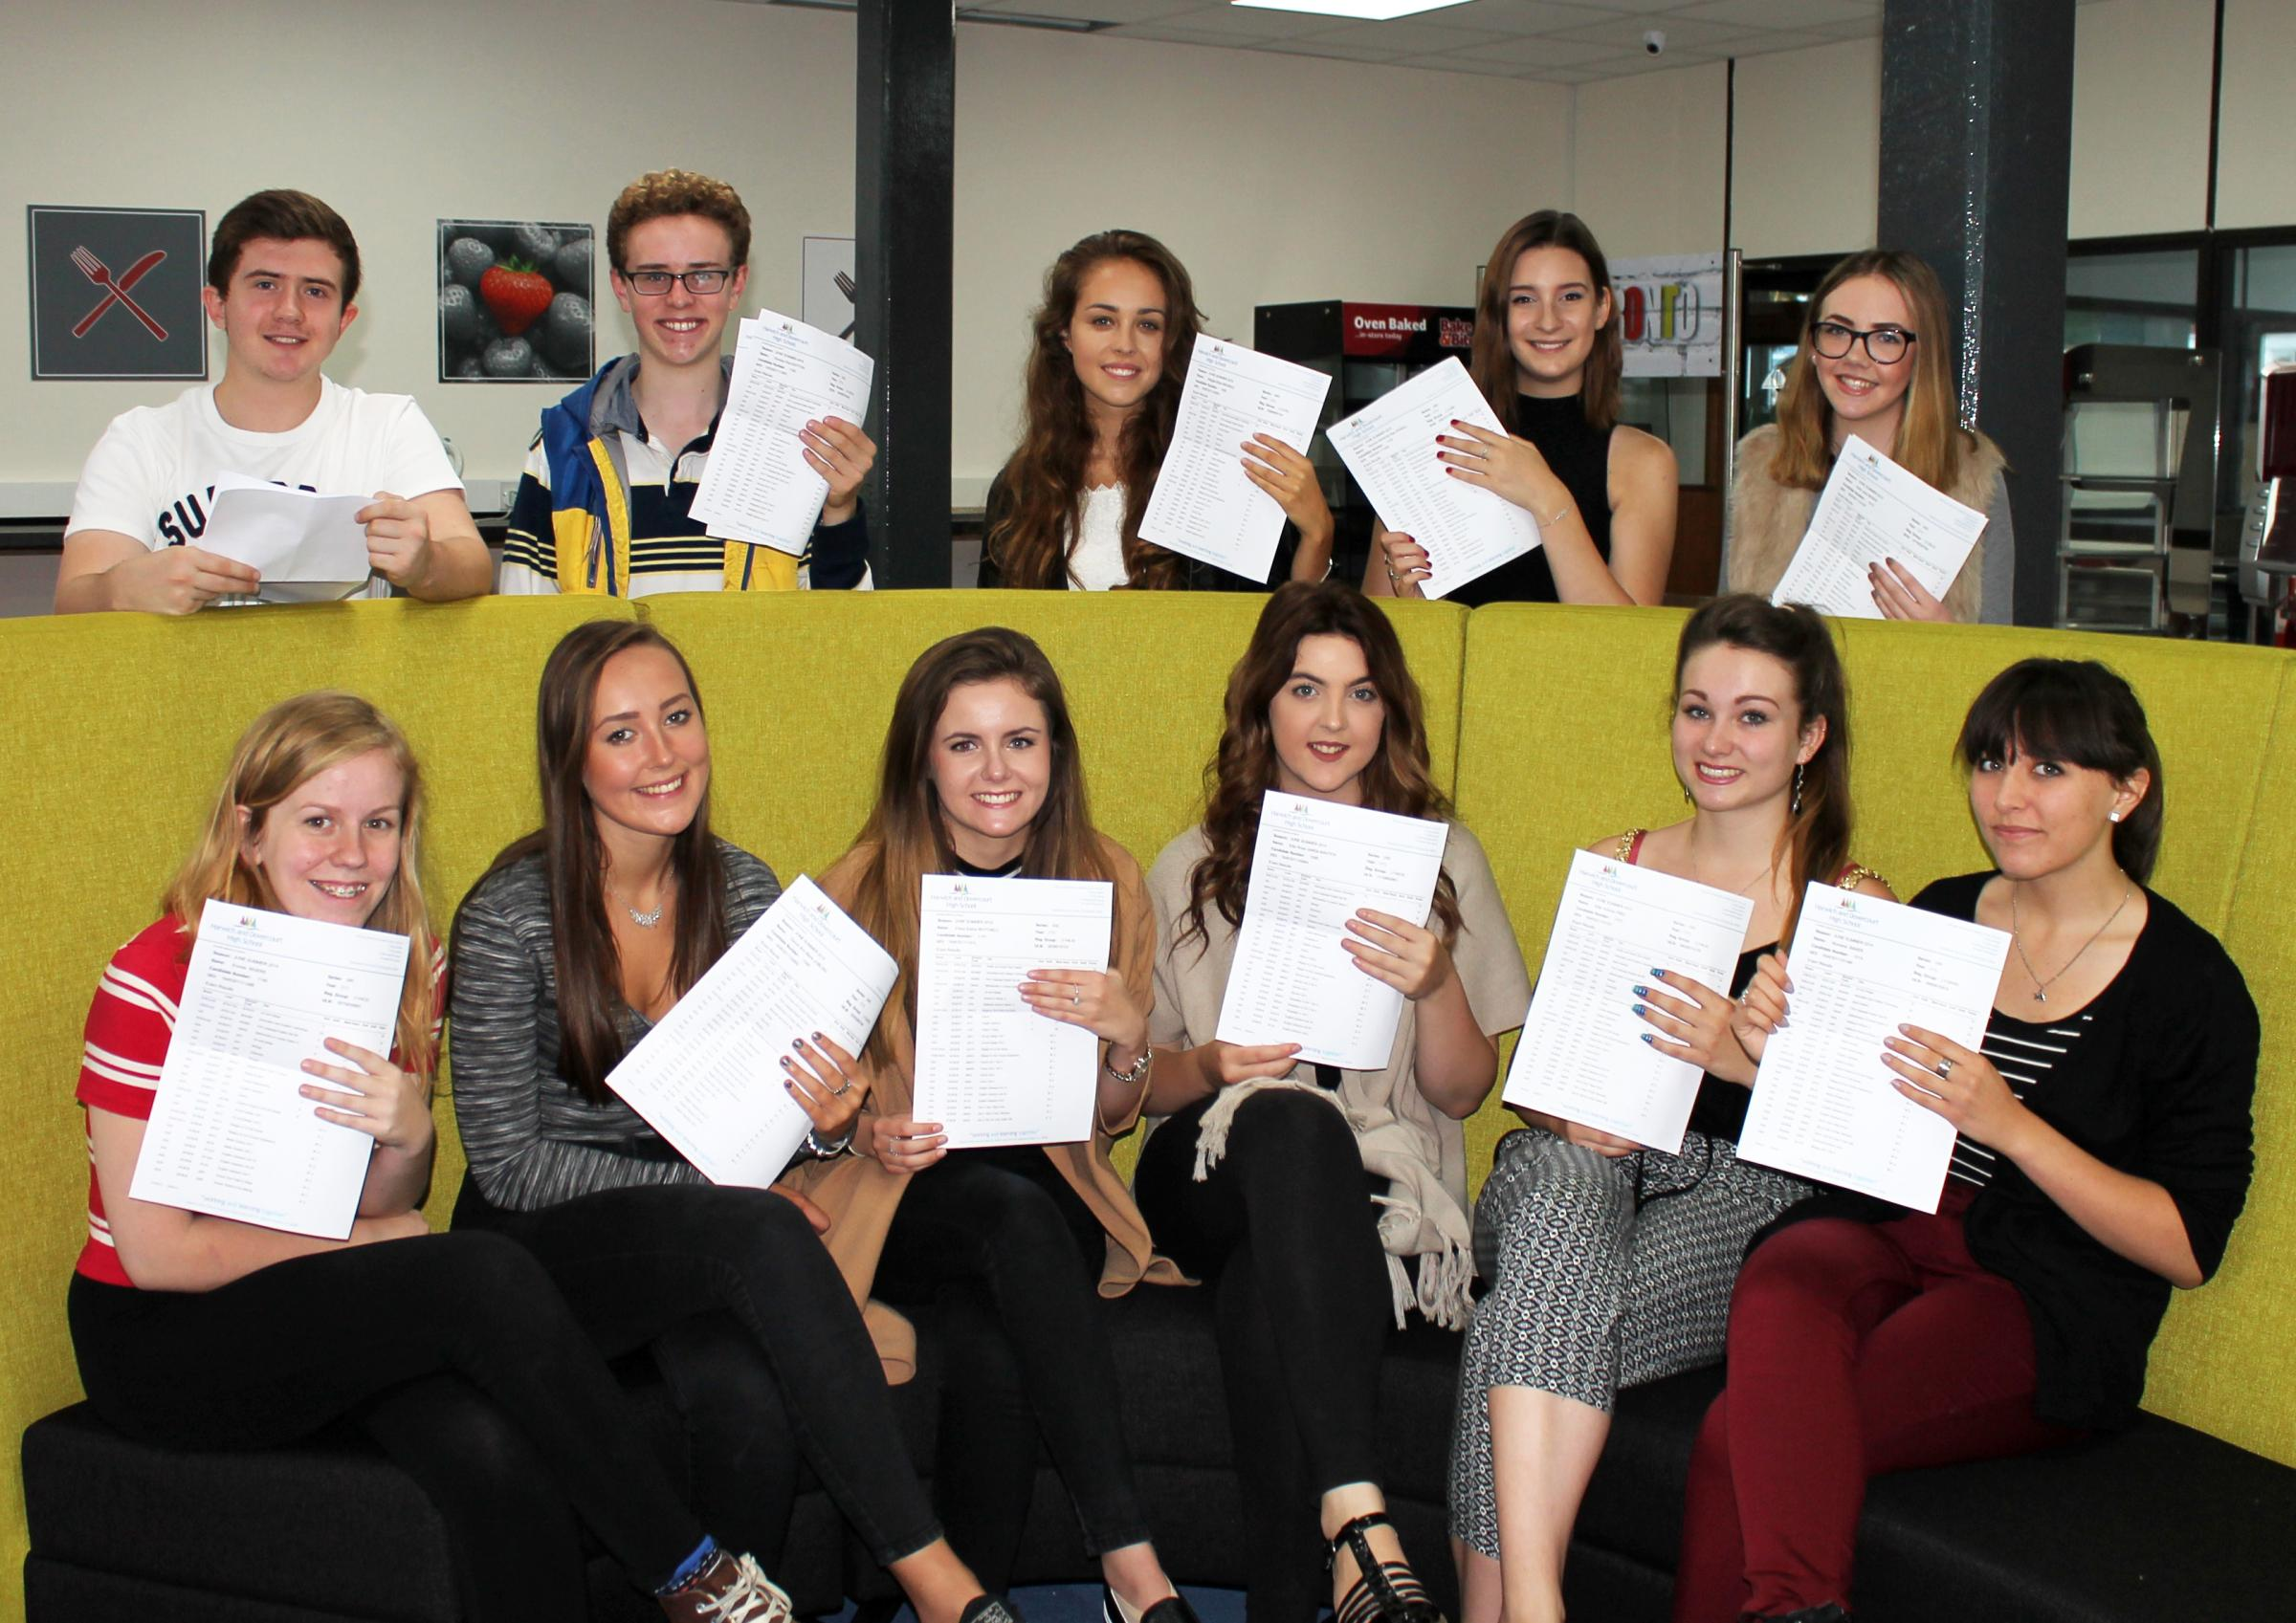 school loses gcse coursework Read the latest granada stories, schoolgirl's gcse coursework sold at charity shop for £5 on itv news, videos, stories and all the latest granada news.